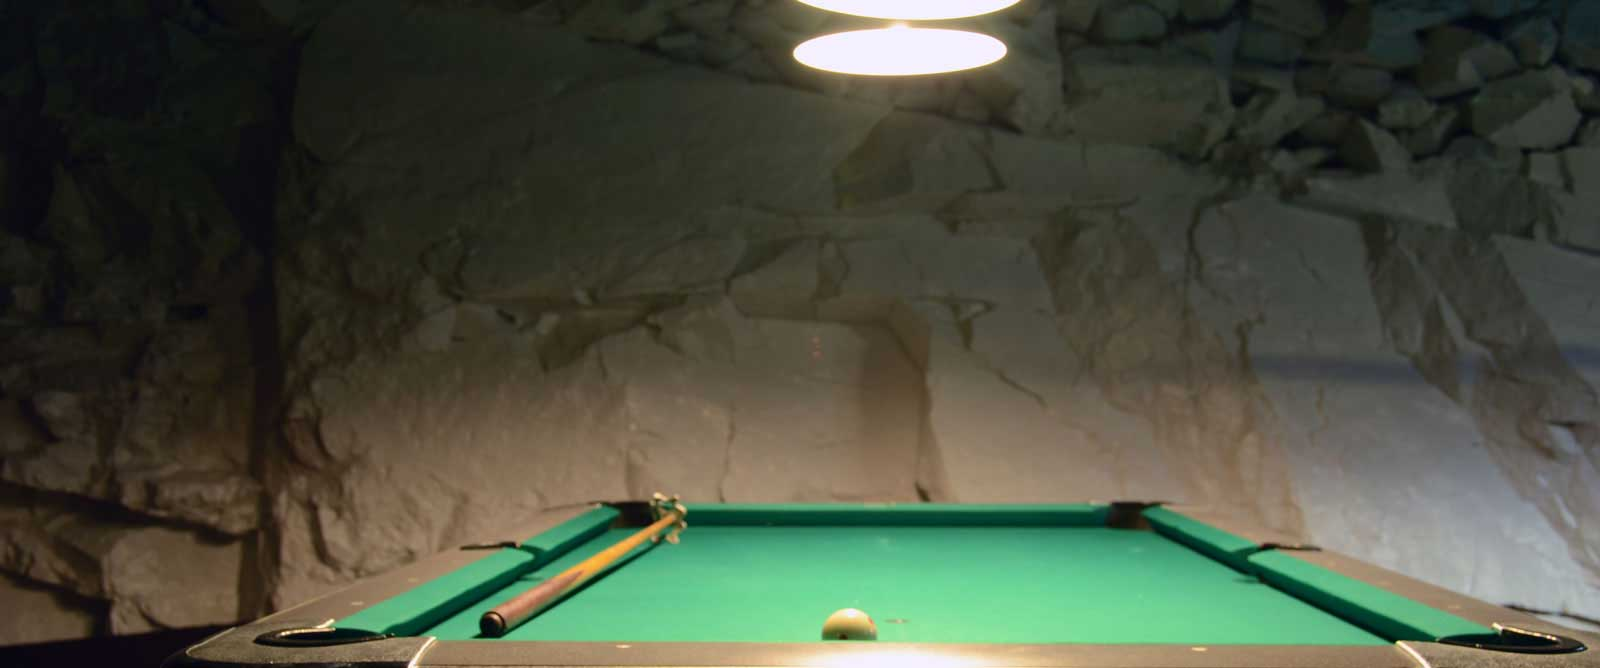 Pool League Software